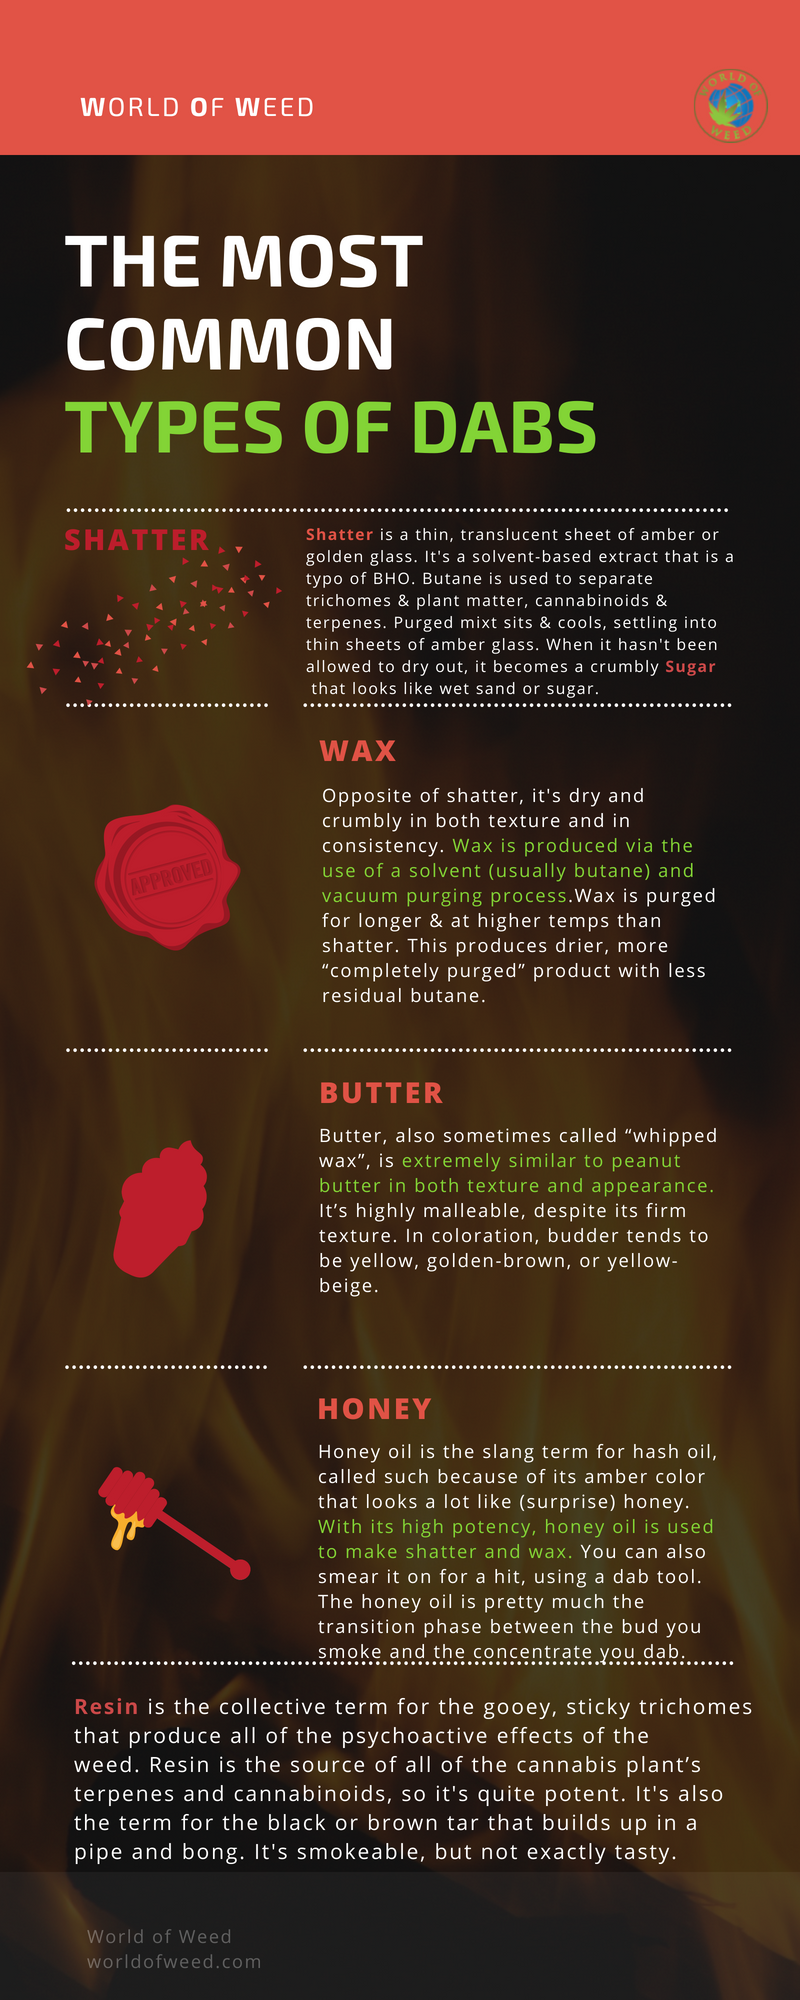 The Most Common Types of Dabs